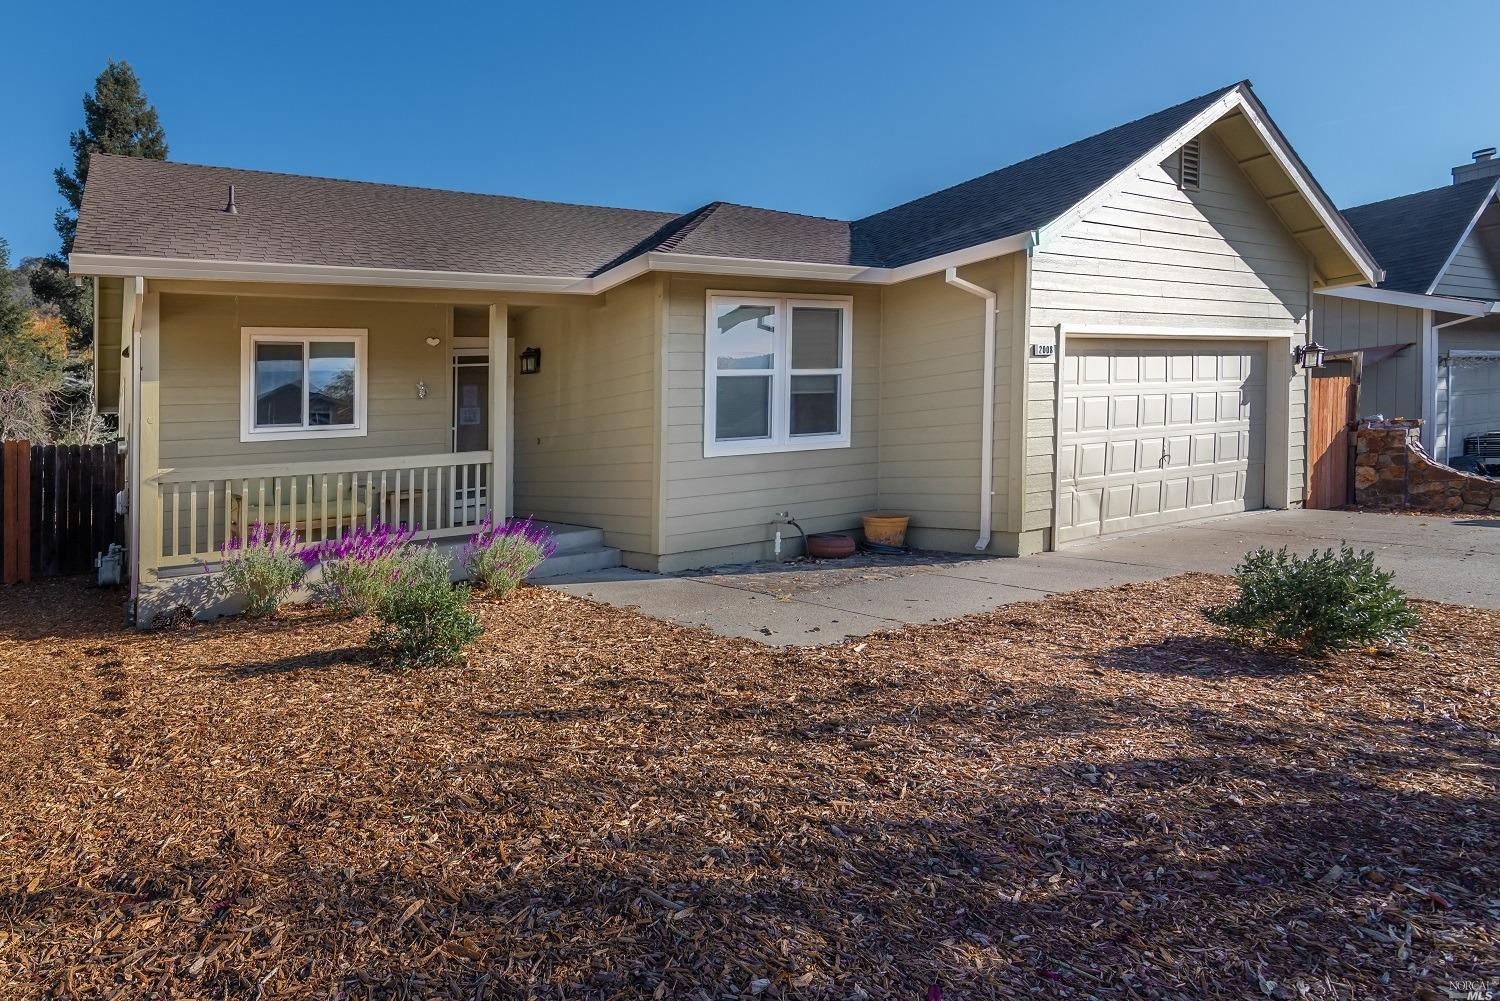 Located in a great Calistoga neighborhood close to downtown. This single-story residence is located on a quiet street near the end of a cul-de-sac with views of the neighboring mountains. The open kitchen has Stainless Steel appliances and a Chef's stove. Vaulted ceiling in the living/dining room creates a spacious feel with lots of natural light. Nice sliding door opens to the deck overlooking the yard. Updated dual pane windows and a new roof in 2020.  Secret temperature-controlled wine room in the garage. Only a short distance to beautiful downtown Calistoga and all it has to offer, restaurants, wine bars, and of course shopping.